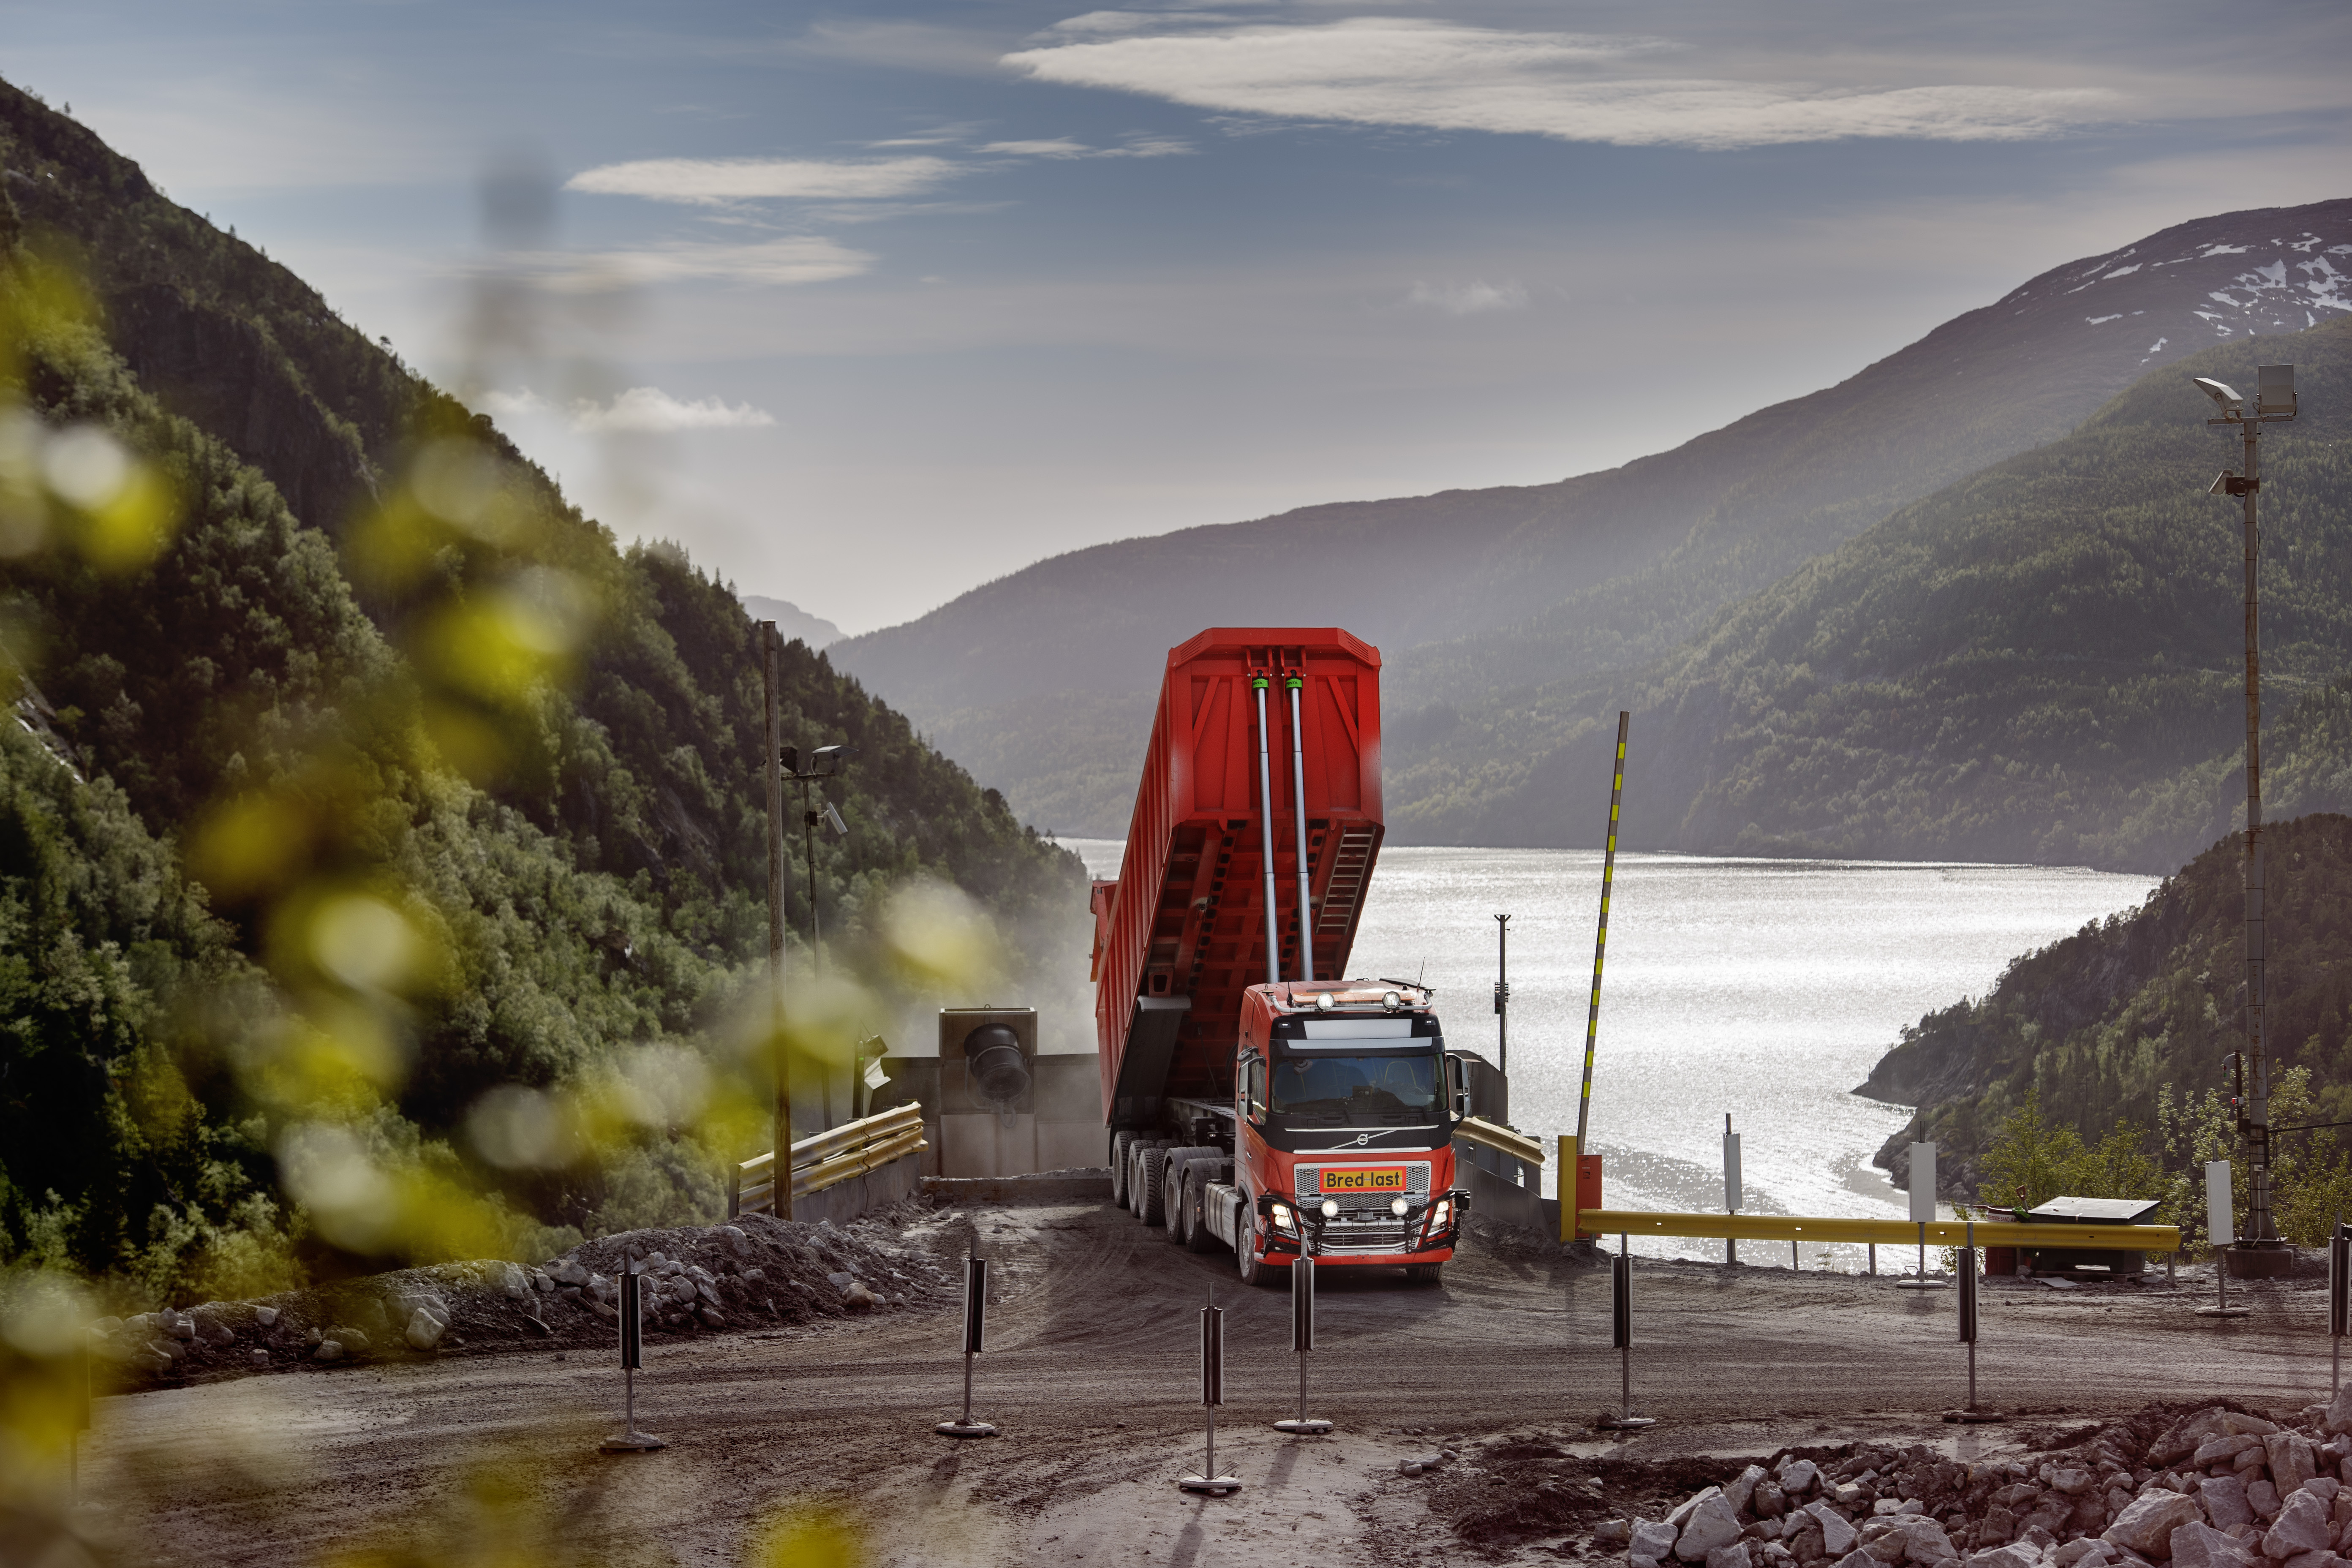 We are proud to be one of the main actors in Brønnøy Project. Taking autonomous transport solutions to the next level.